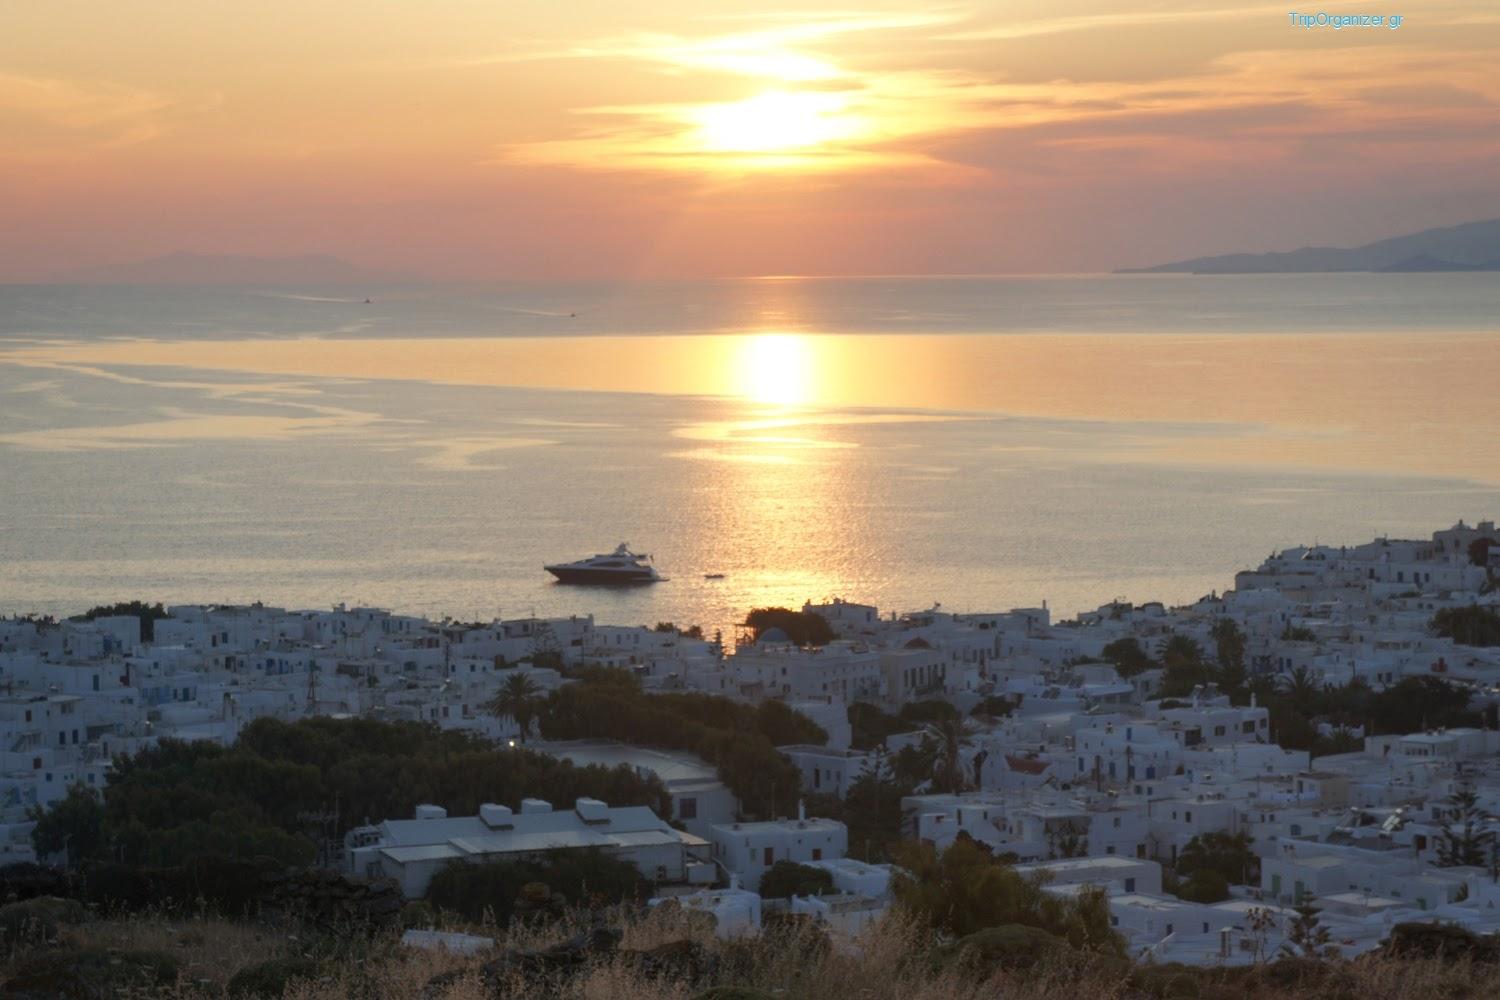 https://www.triporganizer.gr/destinations/mykonos/